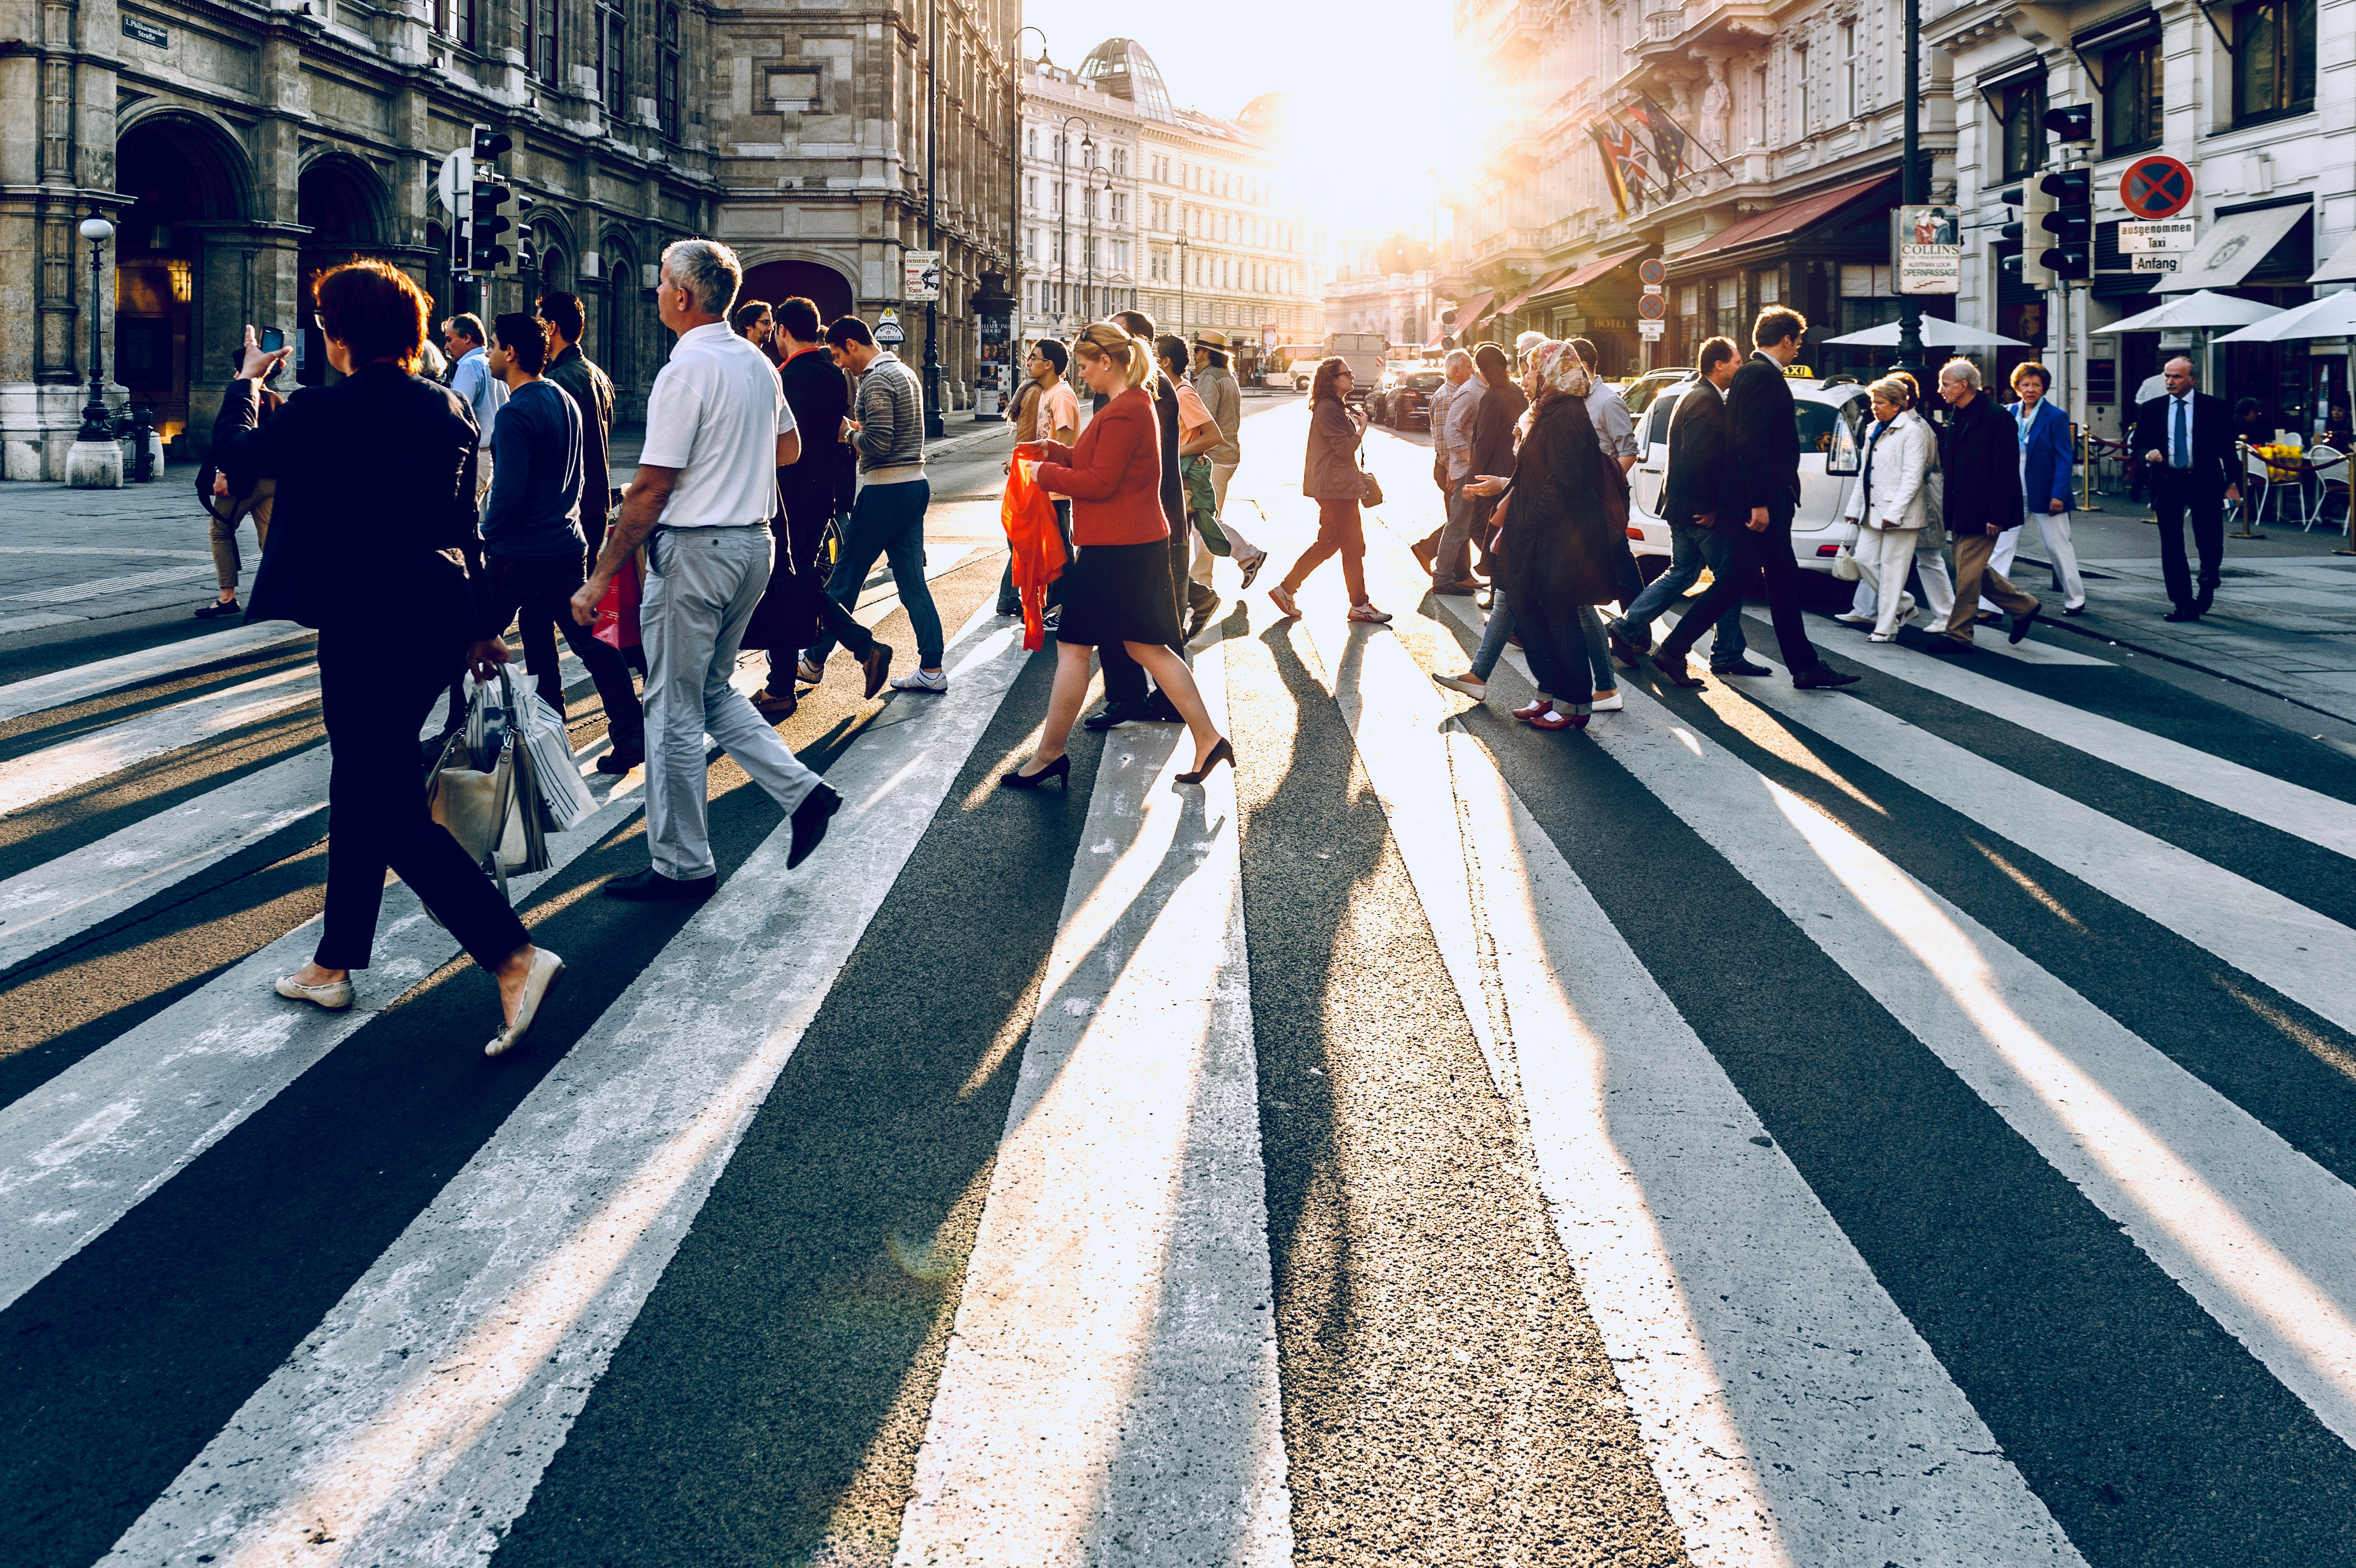 Many people wearing business clothing are crossing the street at a big crosswalk in a city. There are stone buildings in the background and the sun is shining, casting peoples' shadows onto the street.